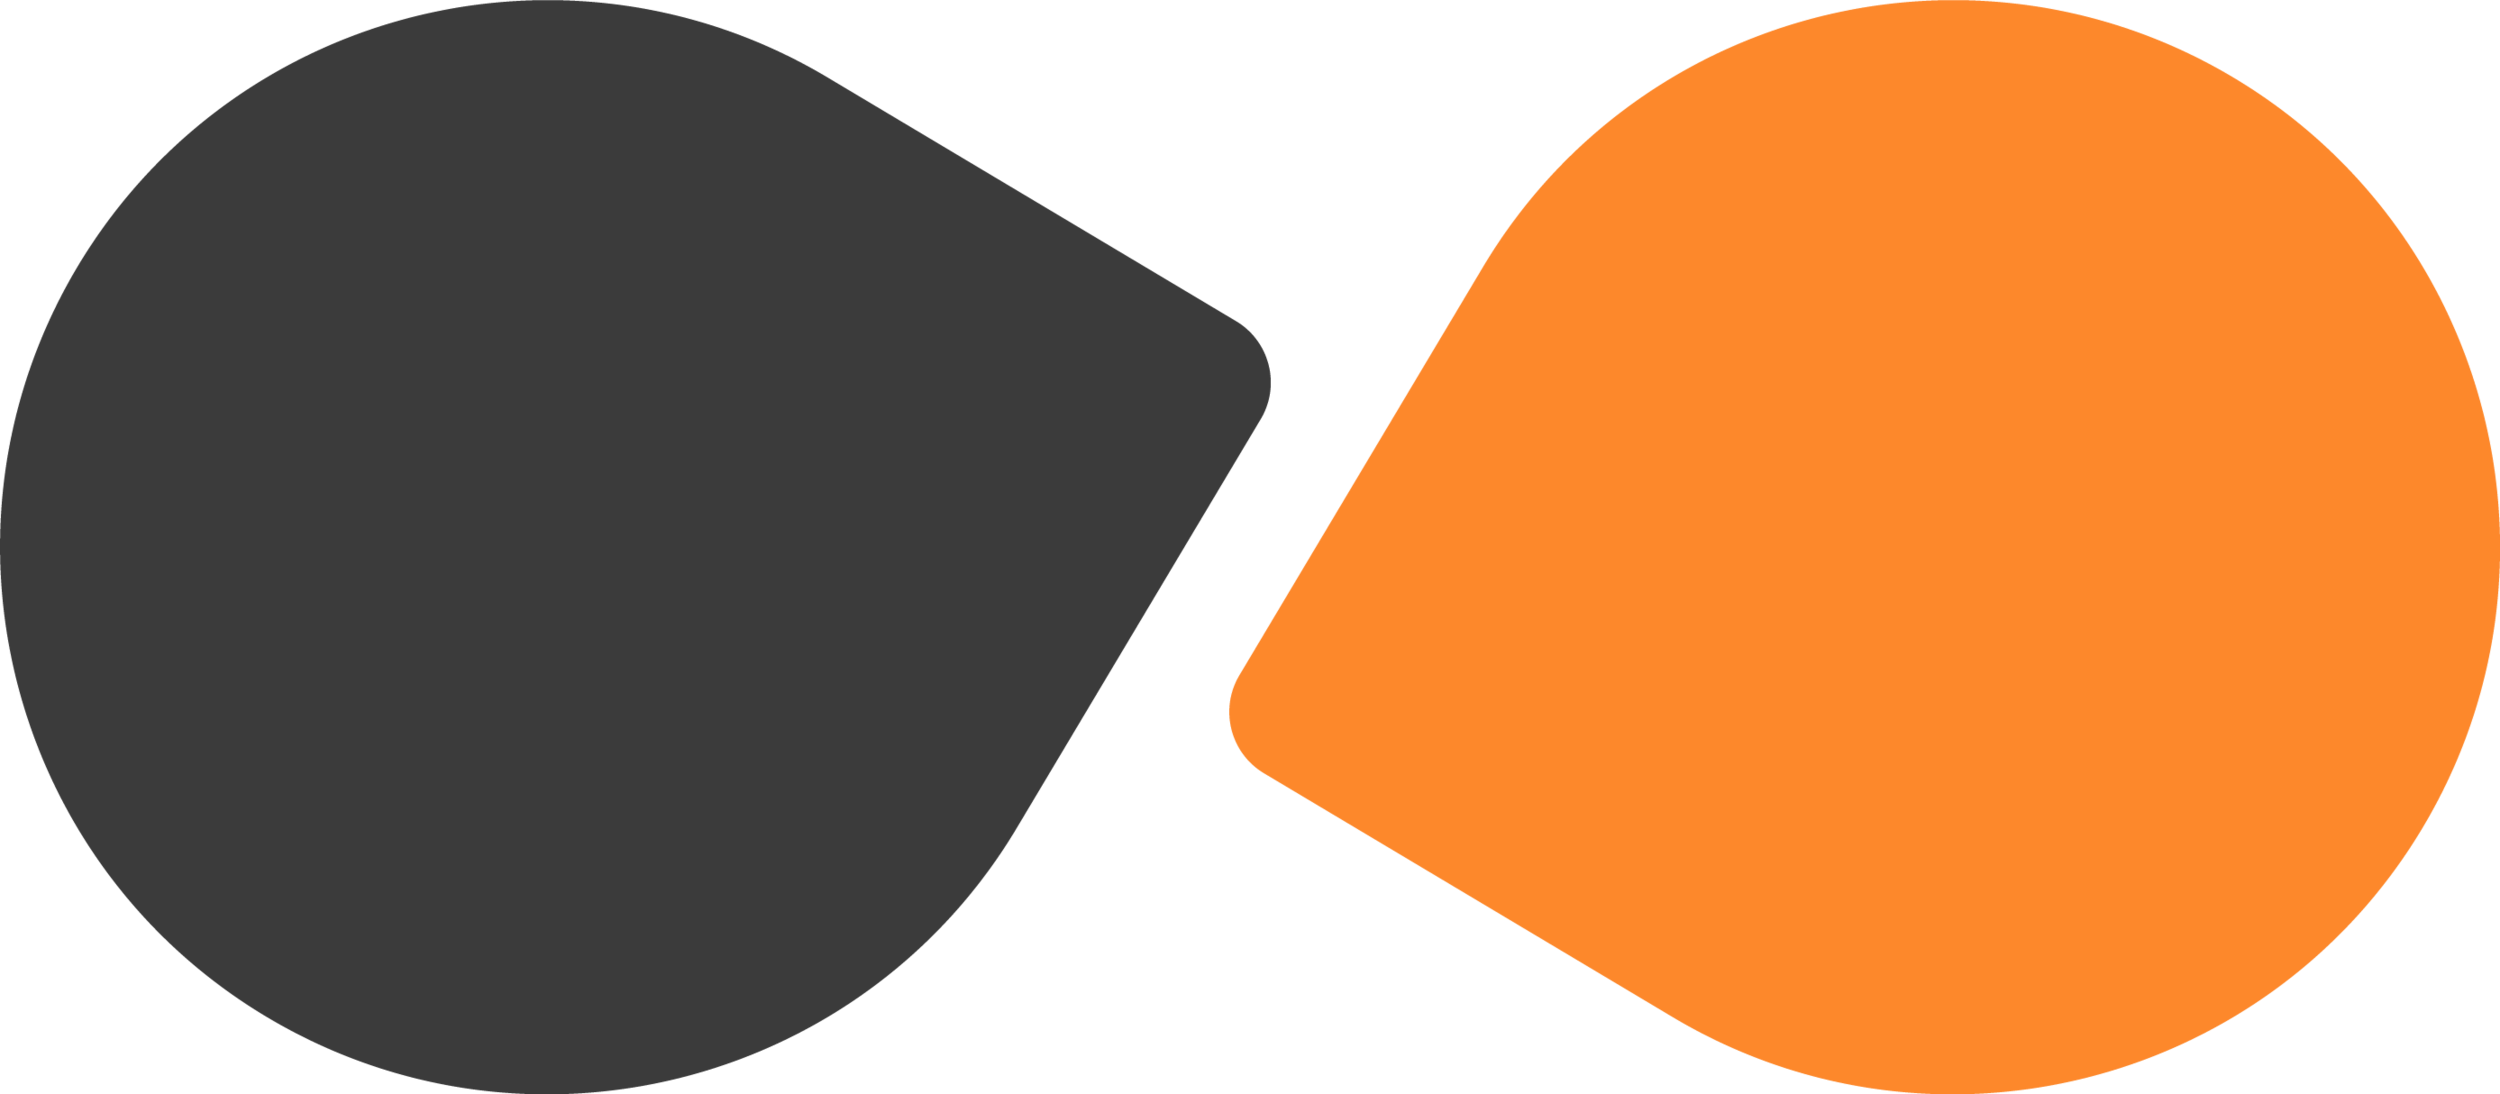 Overloop brandmark_Orange:Charcoal.png